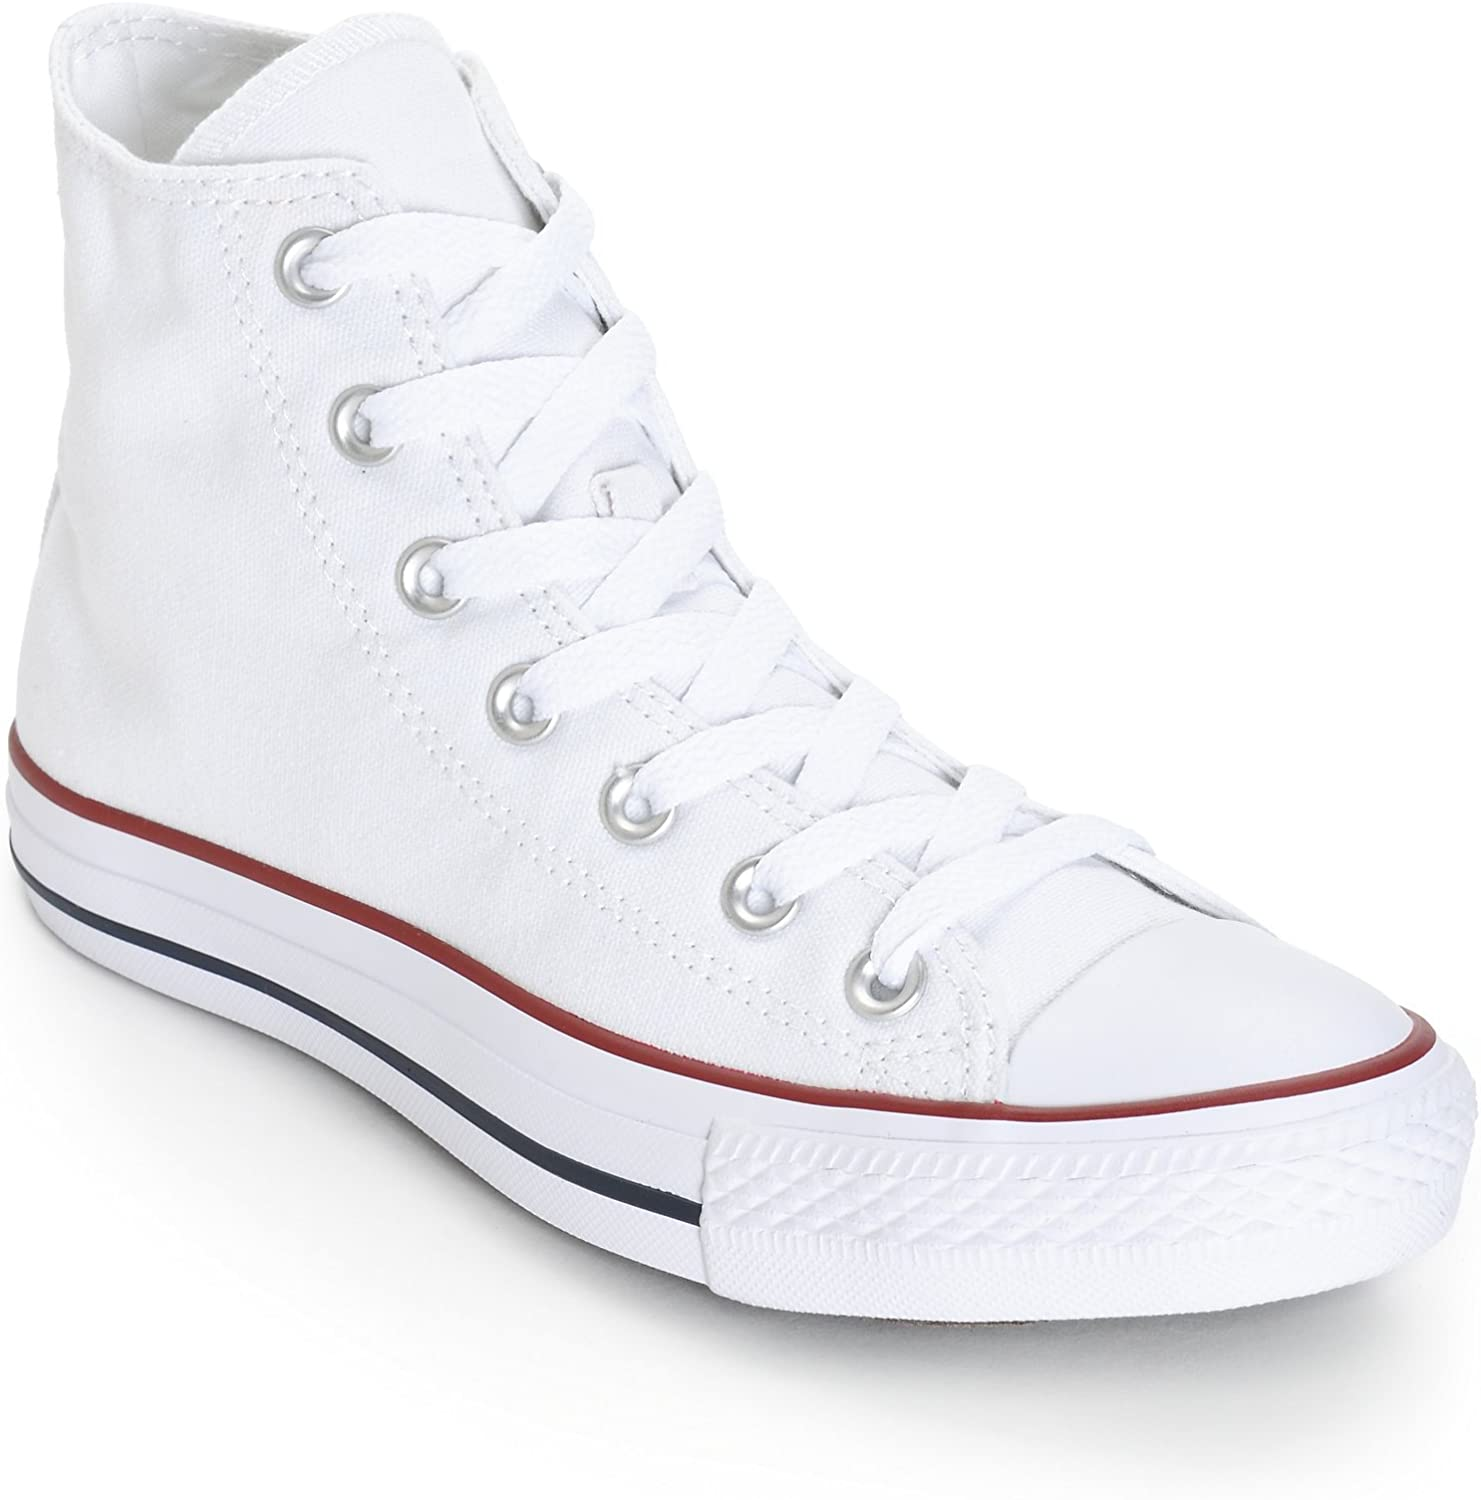 Converse Unisex Chuck Taylor All Star High Top Sneakers (11 D(M), Optical White)